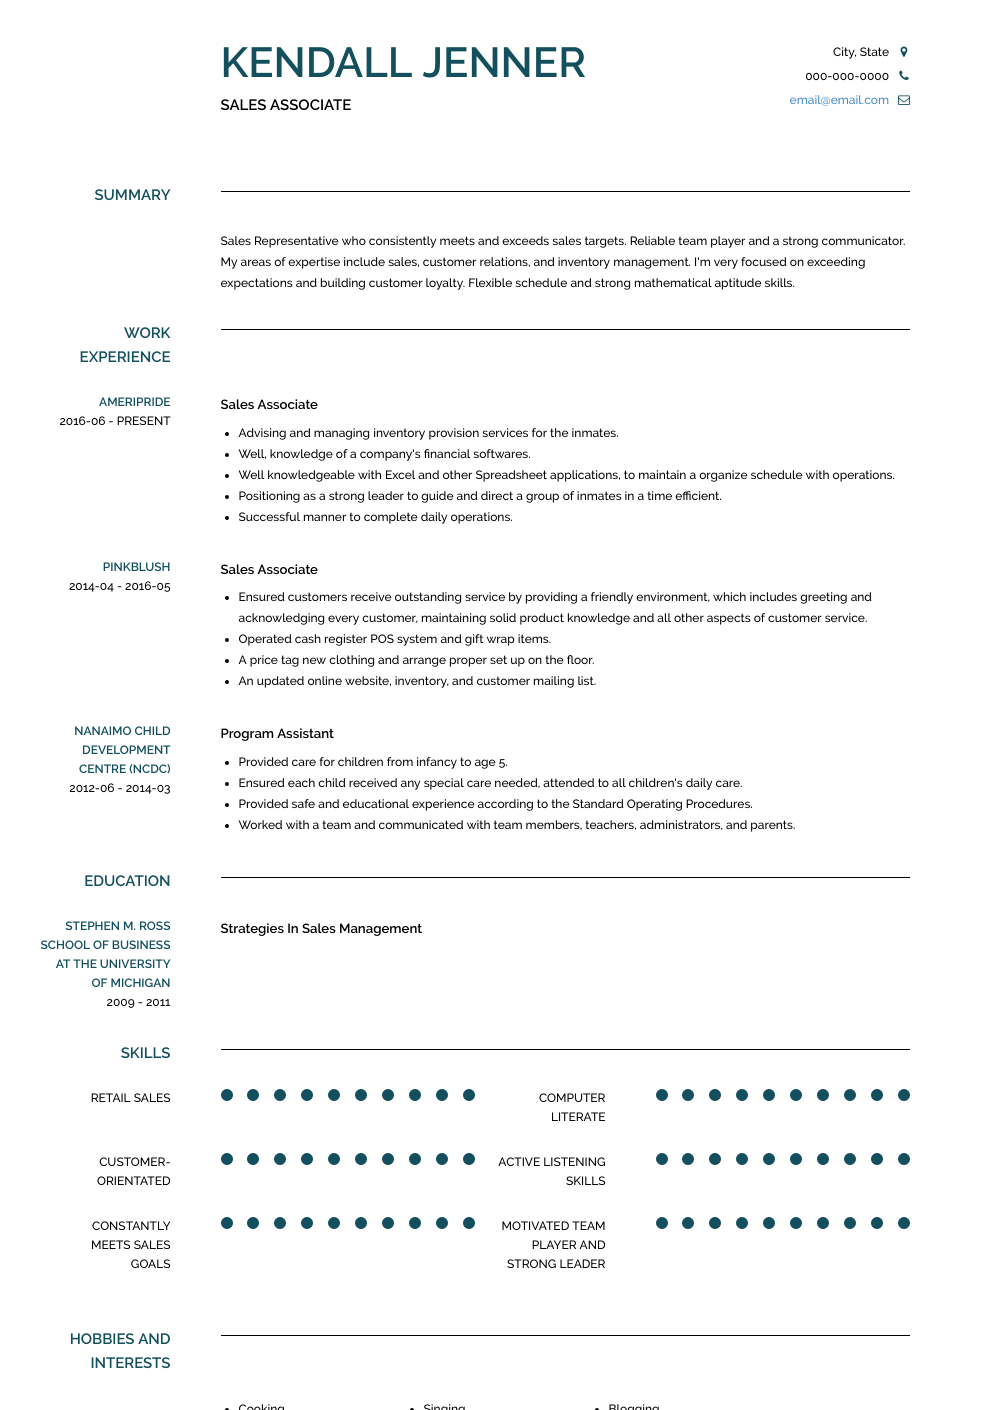 Sales Associate Resume Sample and Template